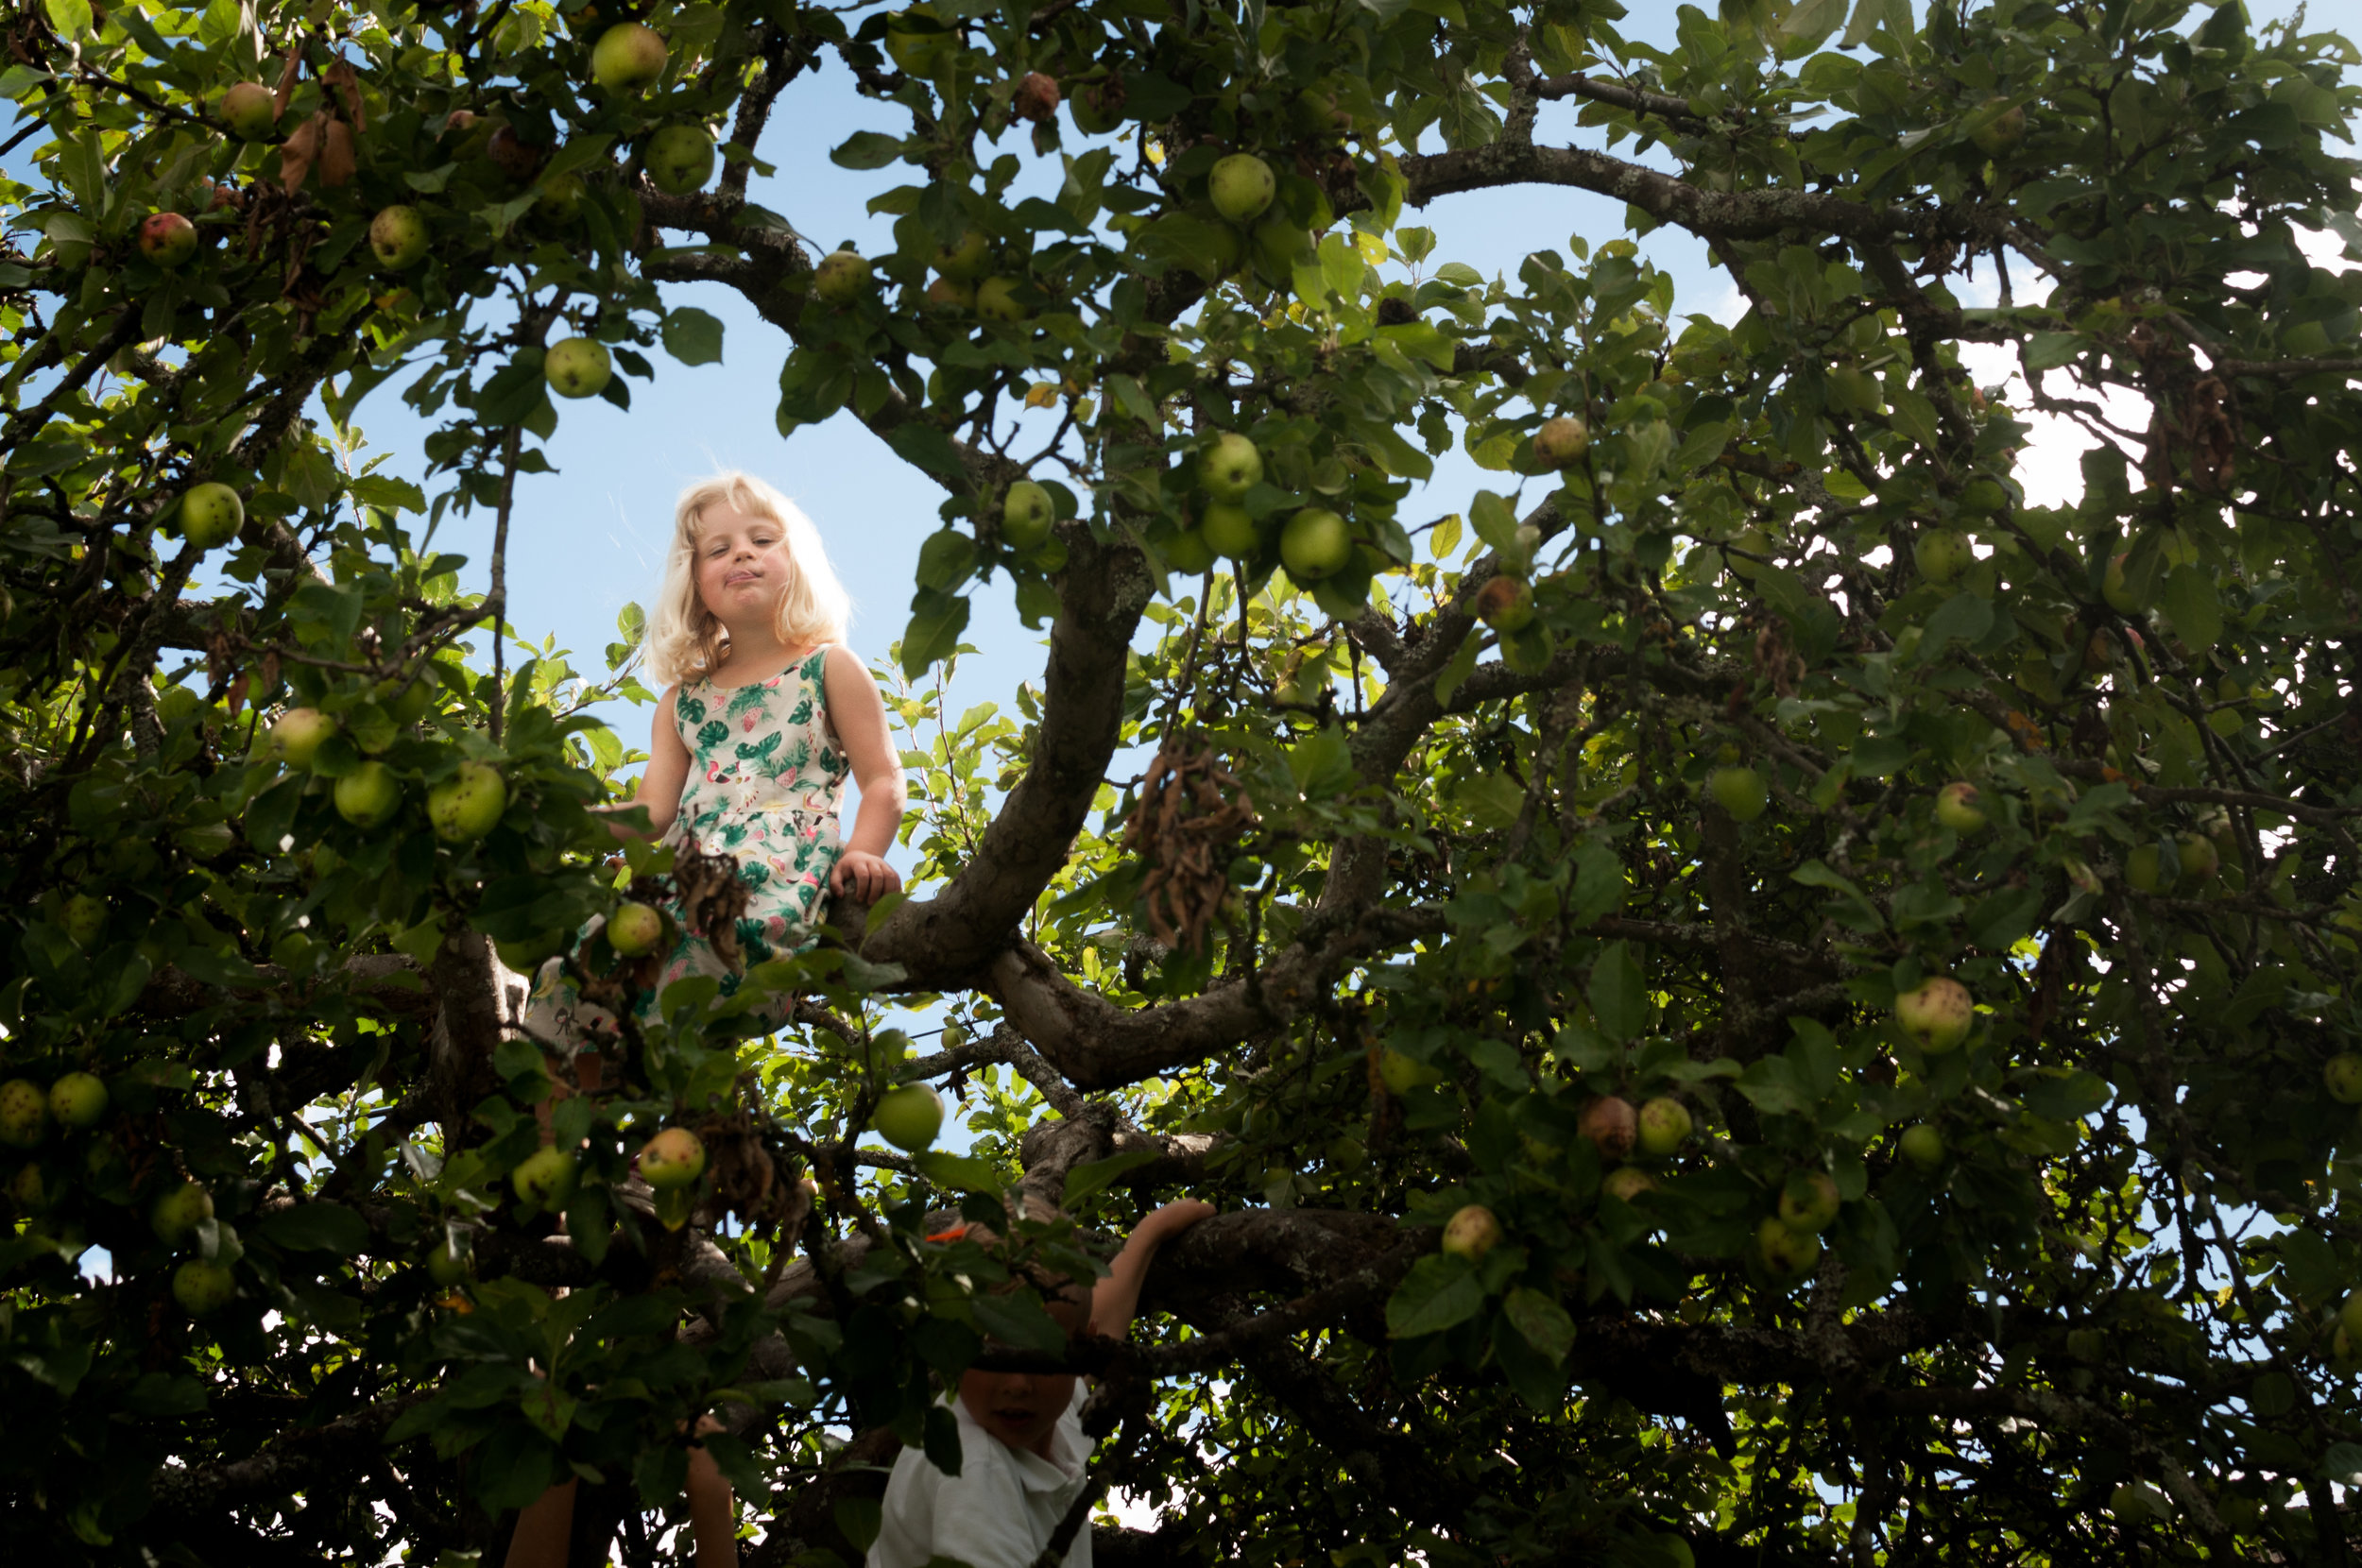 A girl sits in an apple tree and makes a funny face for the photograph.